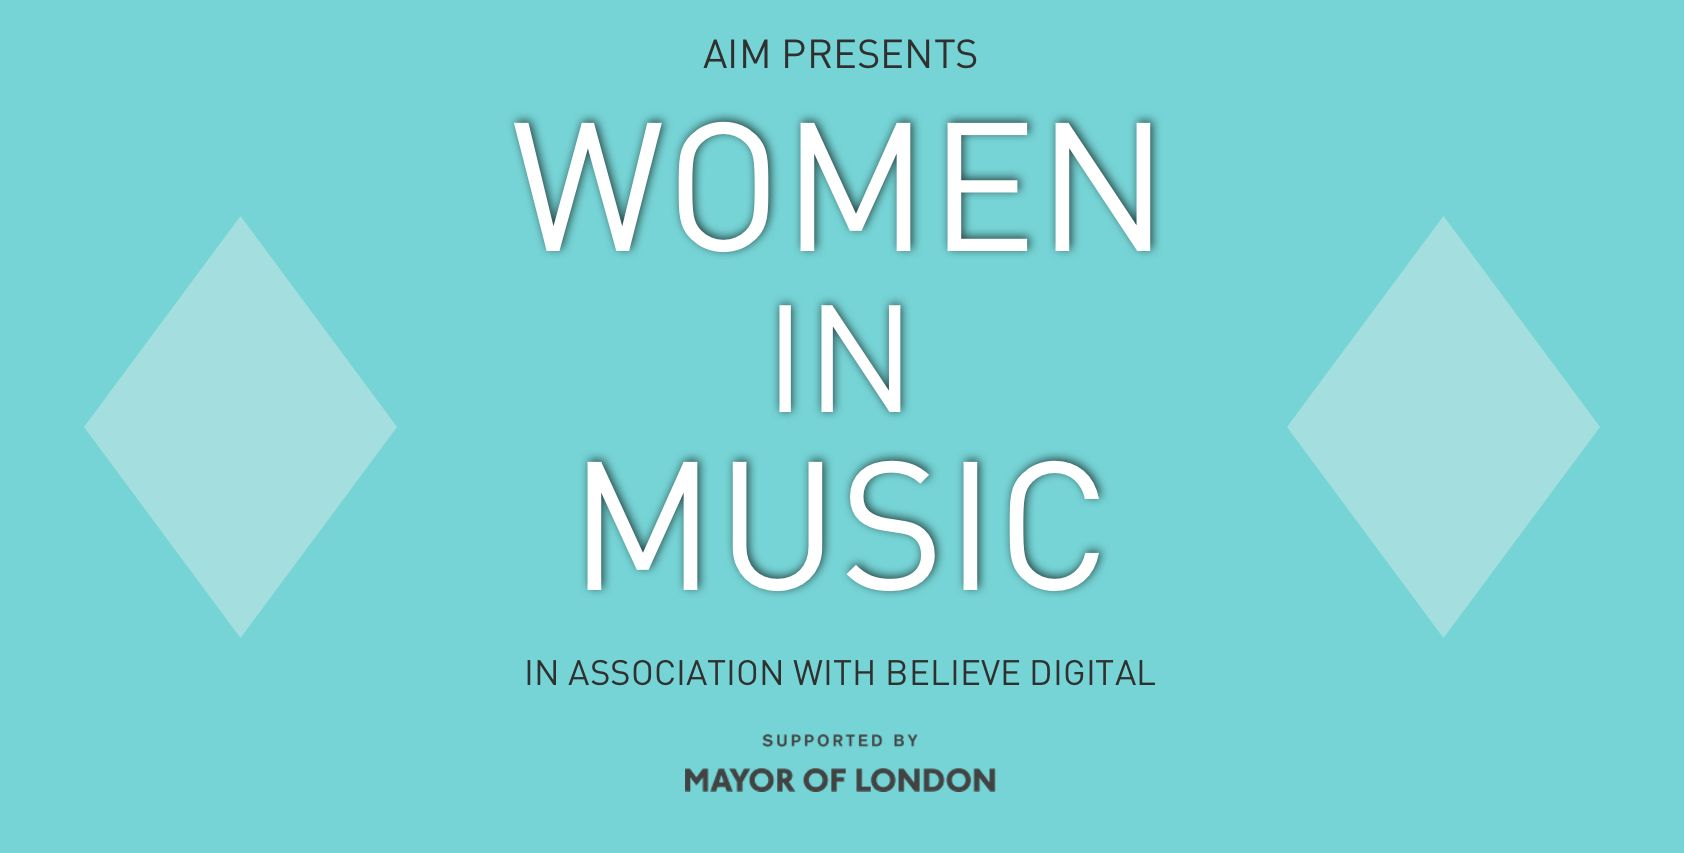 Women in Music http://promocionmusical.es/ven-a-conocer-a-mujeres-lideres-industria-musical-global/: